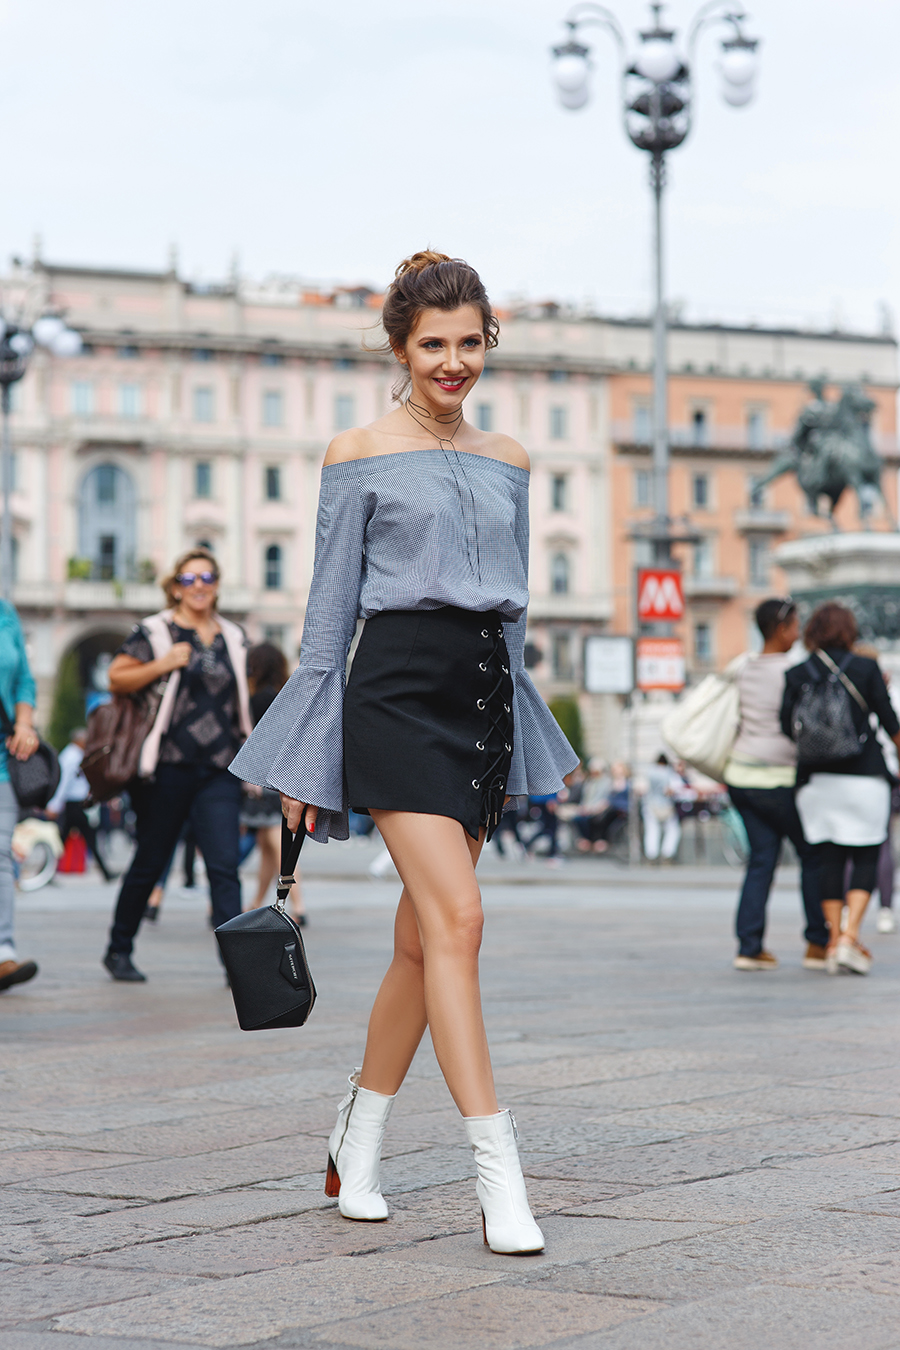 larisa costea, larisa costea blog, the mysterious girl, the mysterious girl blog, fashion blog, blogger, fashion, fashionista, it girl, travel blog, travel, traveler, ootd, lotd, outfit inspiration,look of the day,outfit of the day,what to wear,duomo, duomo di milano, milano,milan,milan fashion week,mfw,mfw ss 17,spring summer,chicwish,bell sleeve top,black and white top,black short skirt,kurt geiger boots,ankle boots,luisa via roma,givenchy bag,antigona, blackbag,transparent heelboots,galleria vittorio emanuele II, milan,milano,milan fashion week,mvmt watch,mvmt black watch